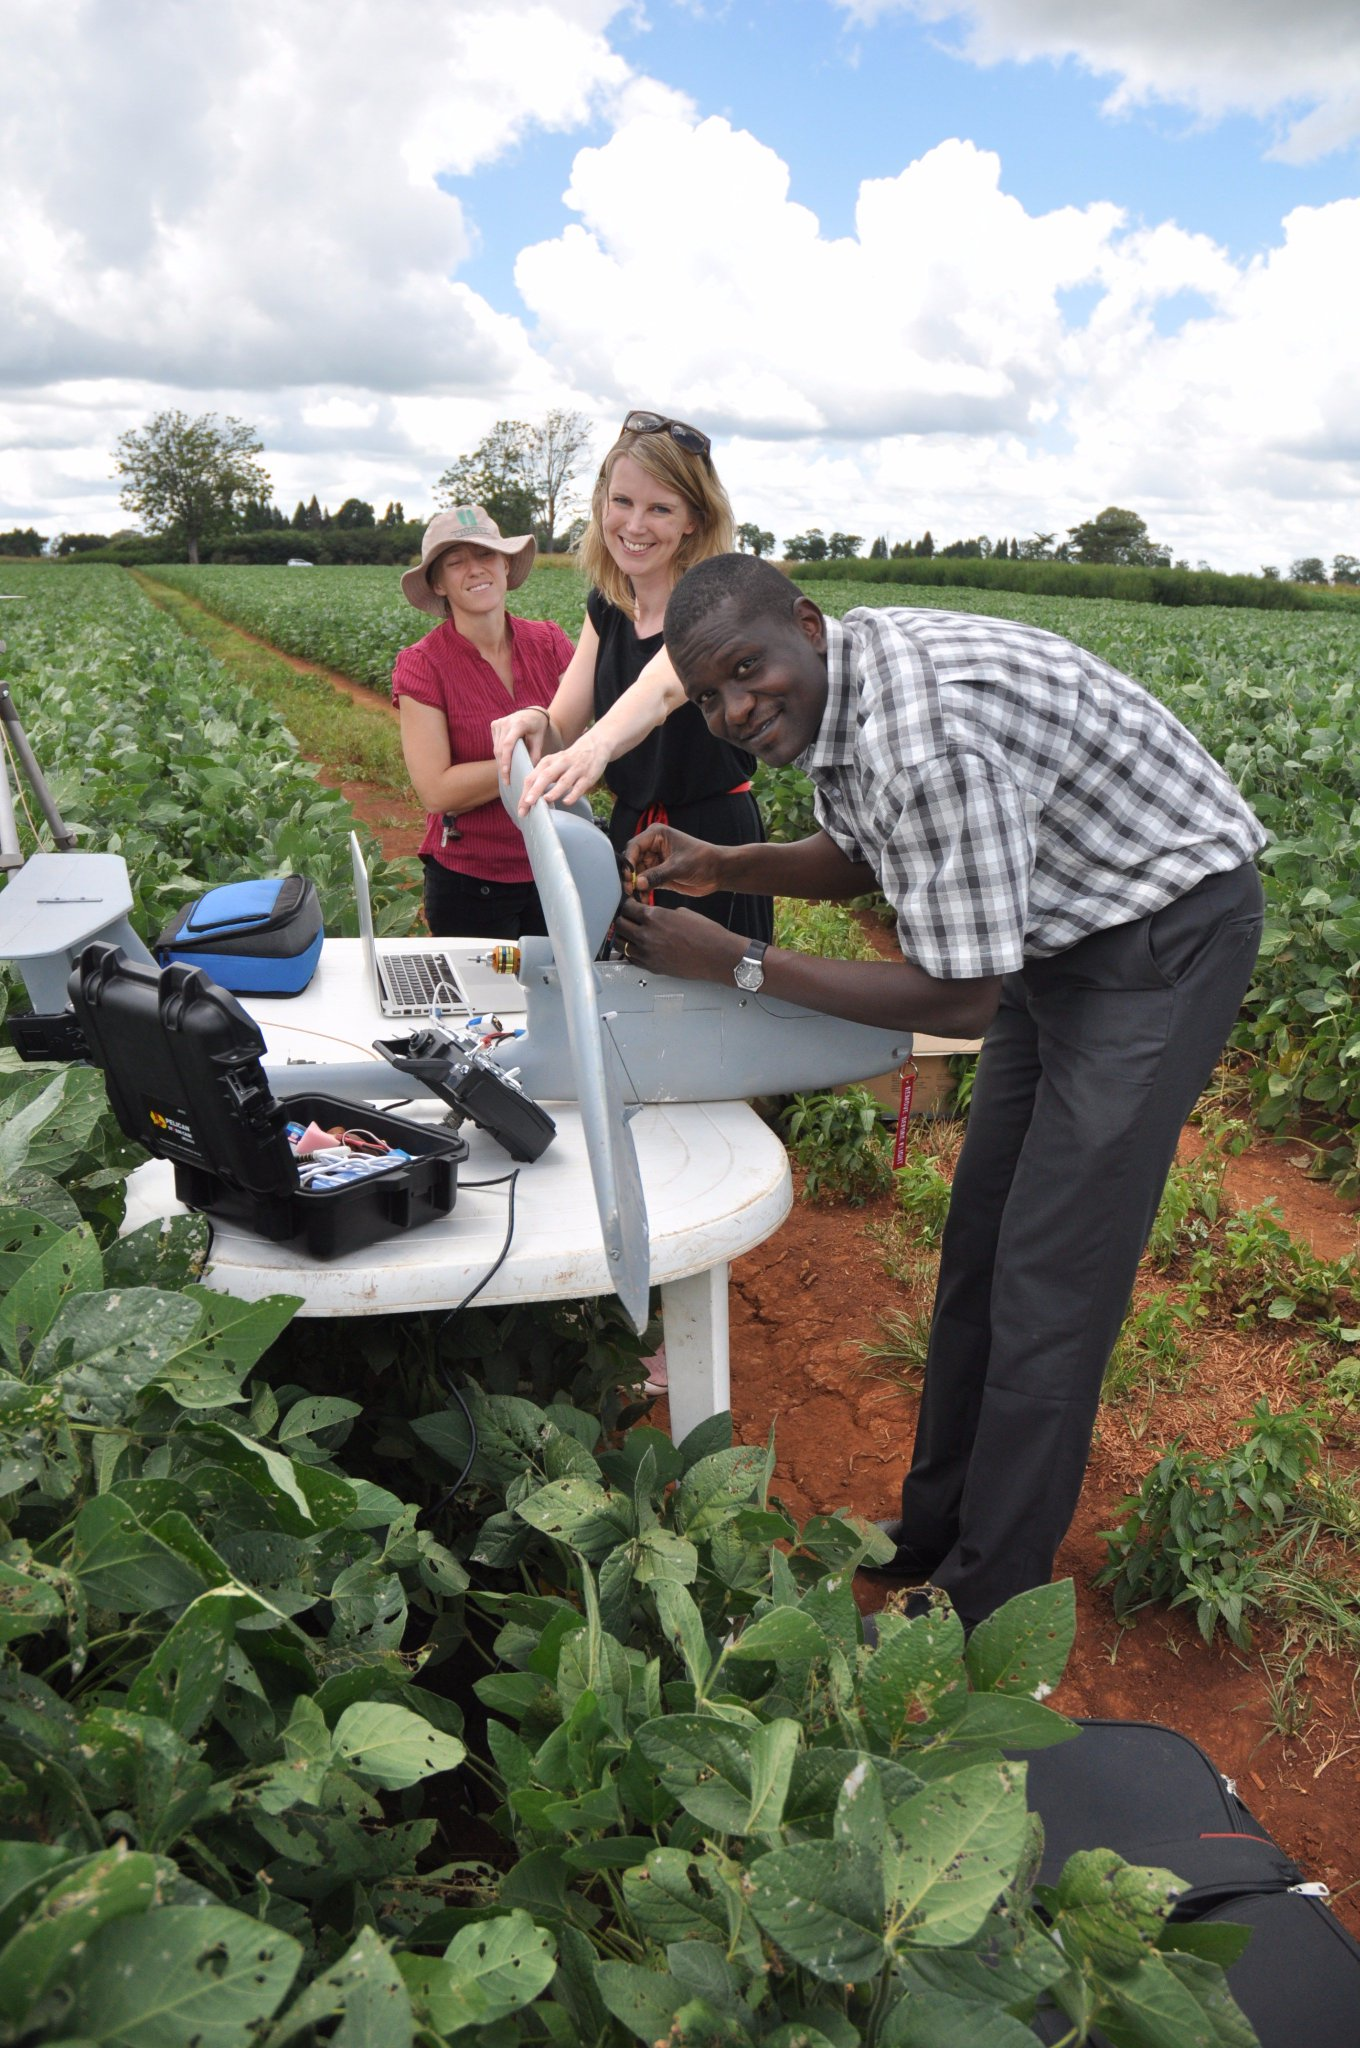 I'm an #actuallivingscientist using new phenotyping tools to develop maize with improved stress tolerance in #Zimbabwe @CIMMYT https://t.co/p22TbwSr7y